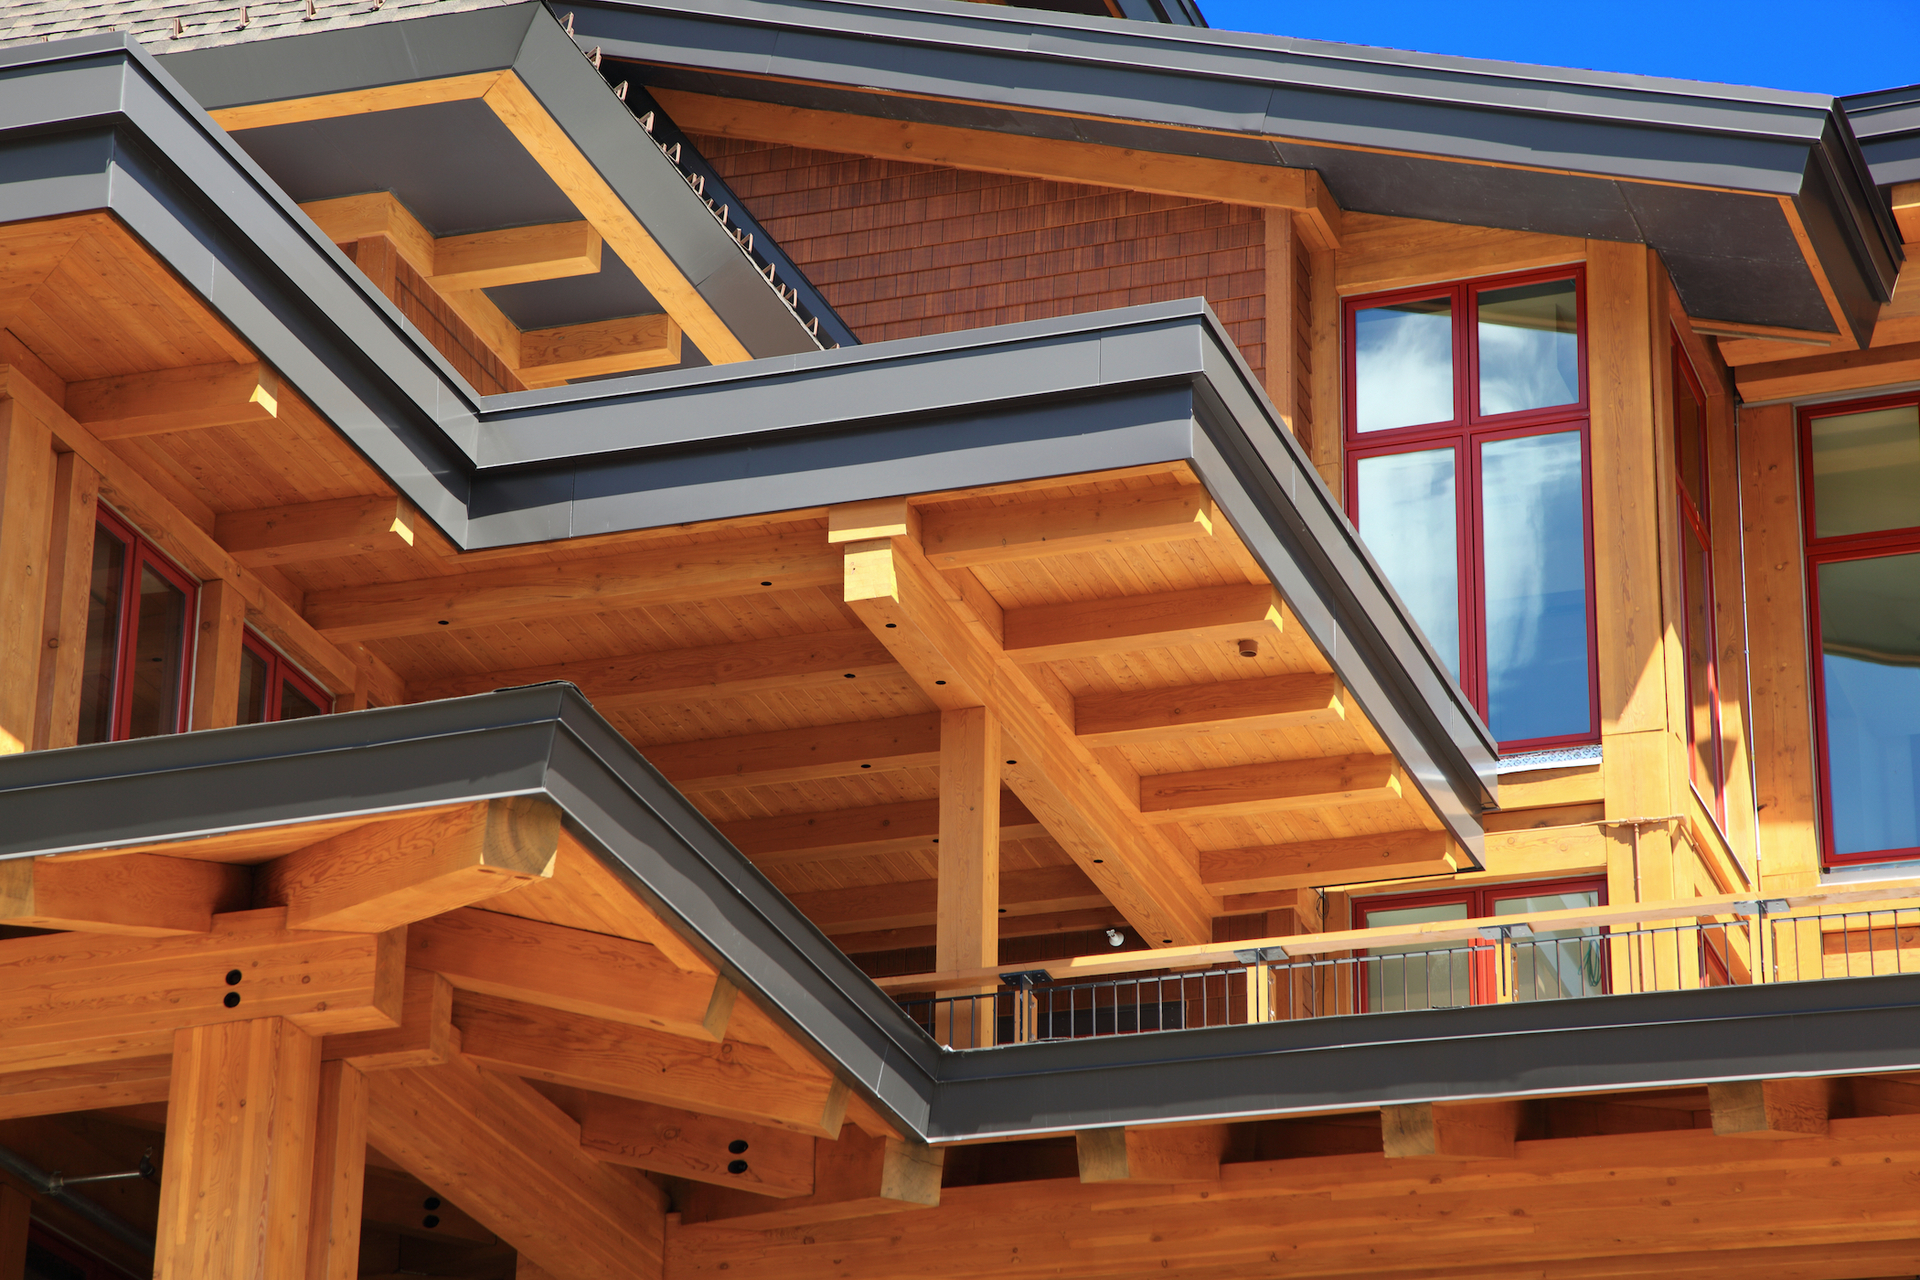 A closeup of the detailed wood exterior of Spruce Peak Village featuring aluminum-clad window systems by Pella.